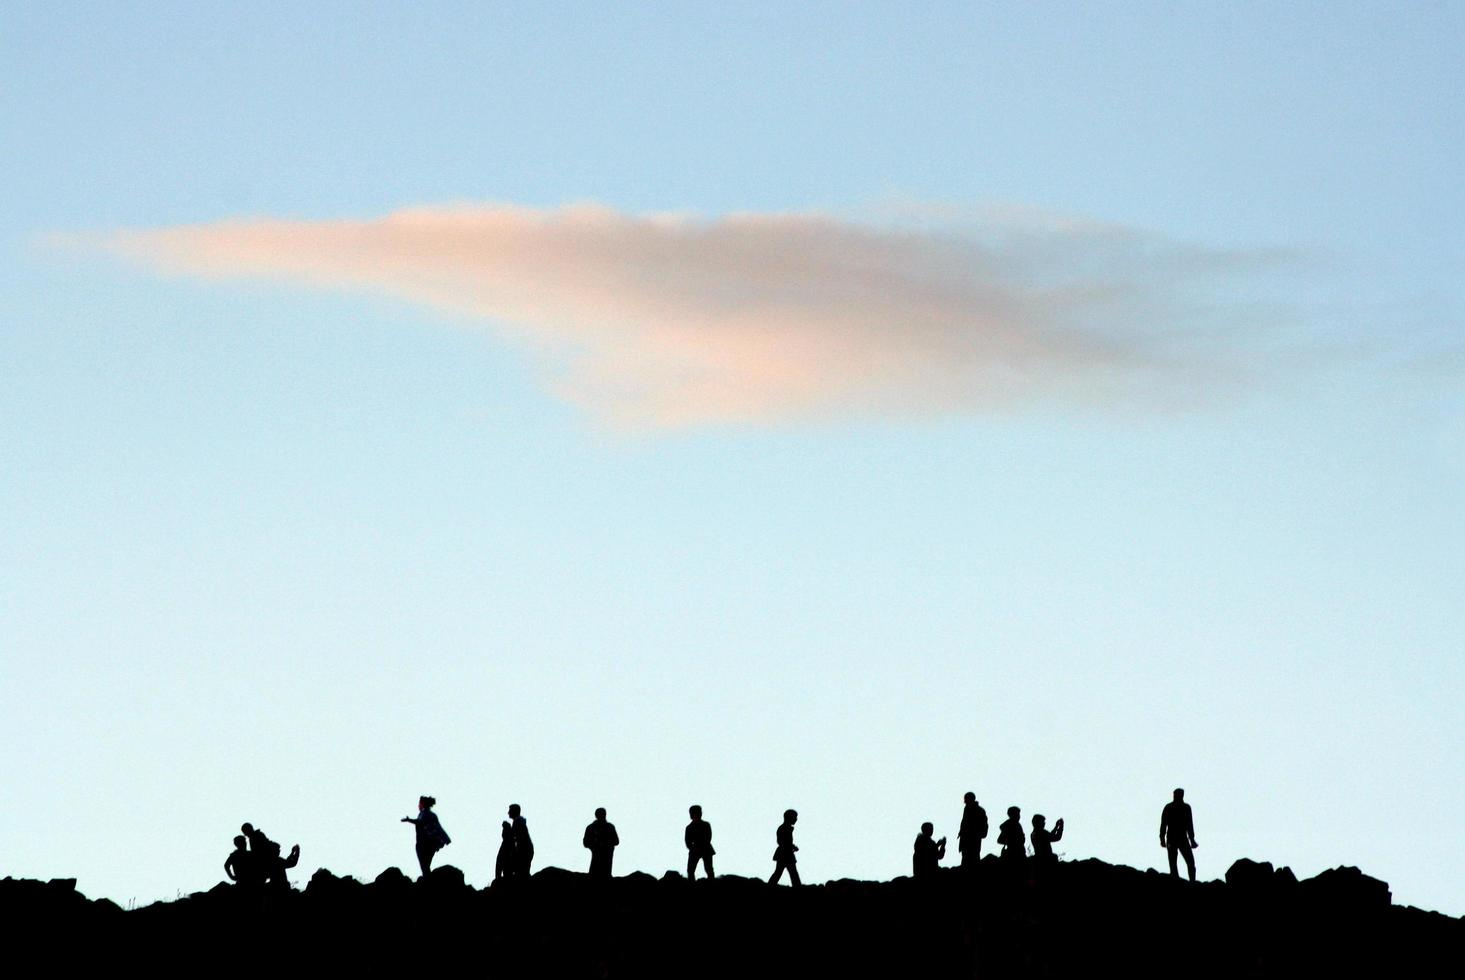 Silhouettes of people on top of a hill photo